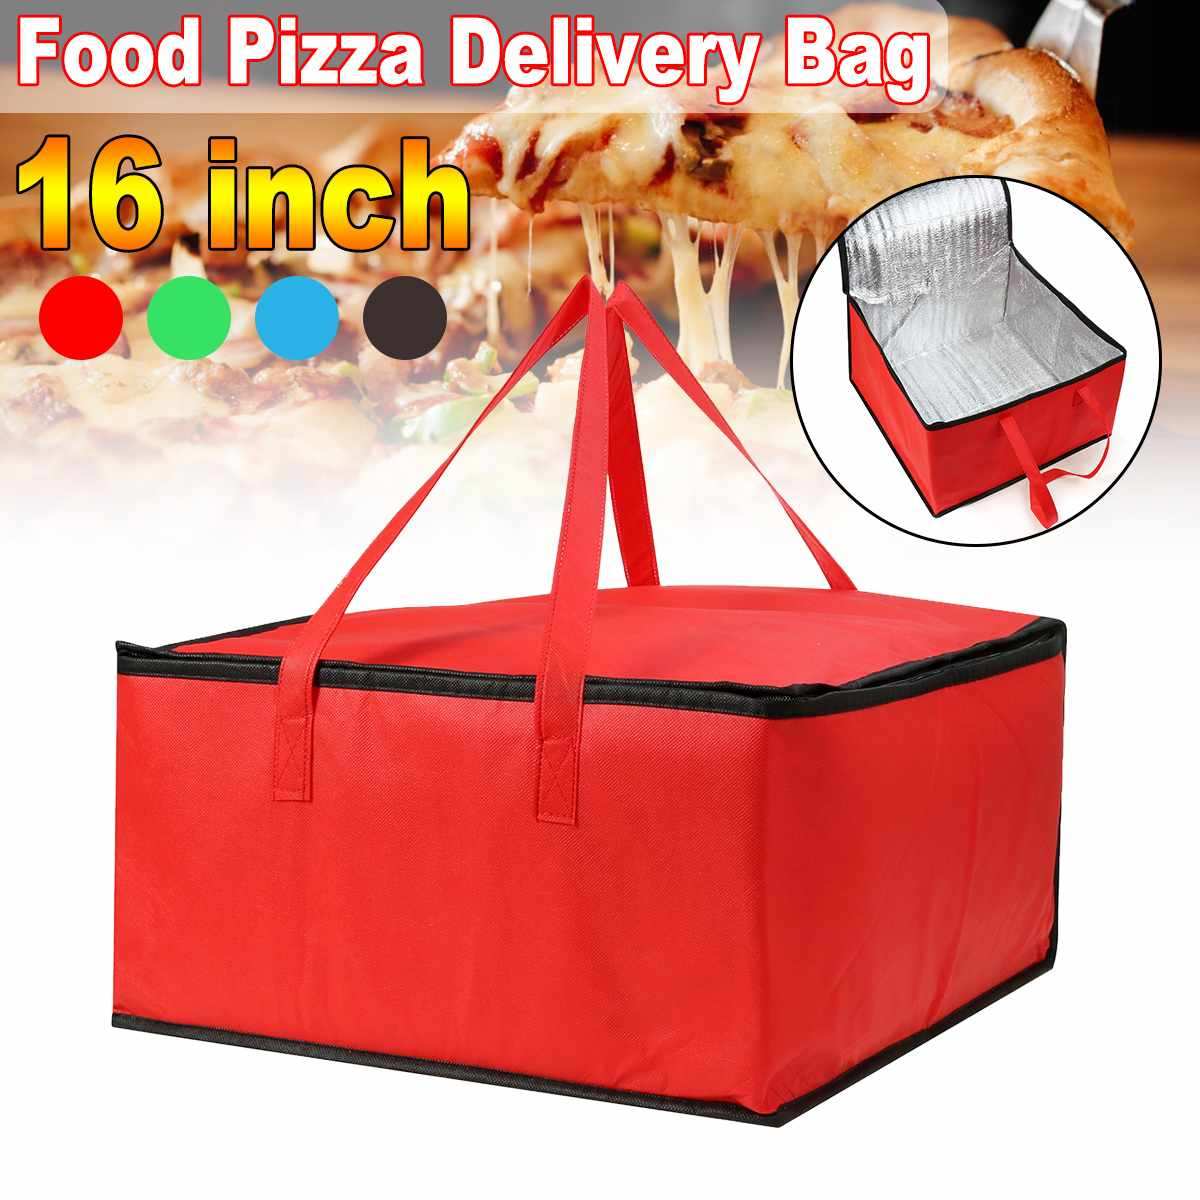 16 Inch Insulated Bag Lunch Cooler Bag Insulation Folding Picnic Portable Ice Pack Food Thermal Food Delivery Bag Pizza